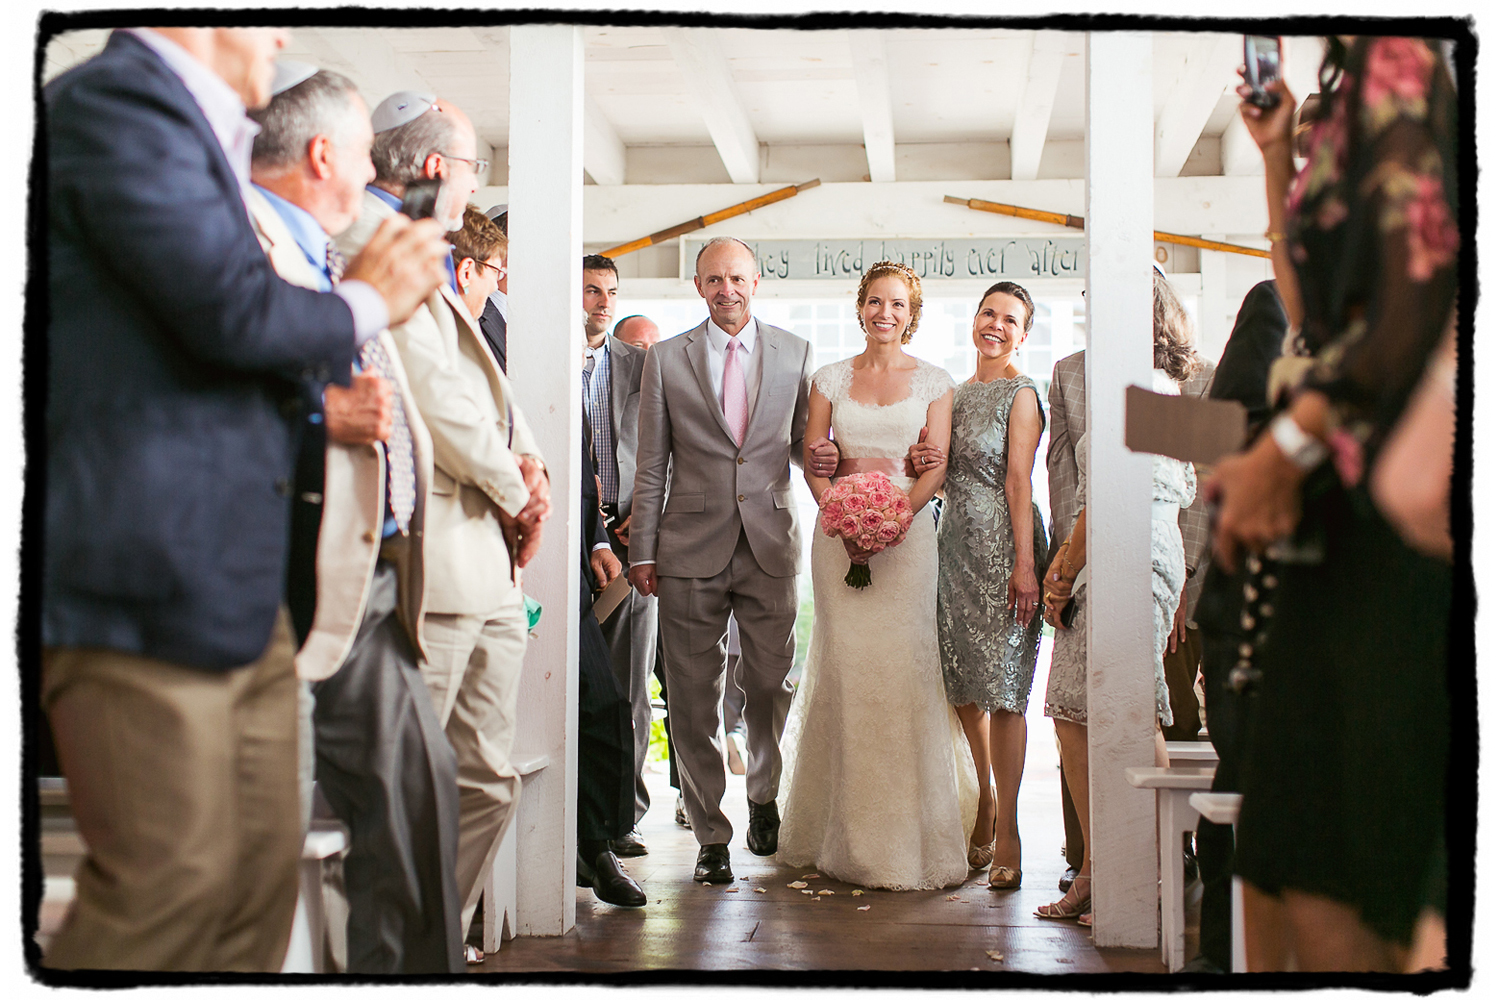 Kelly is walked down the aisle by her parents in the seaside chapel at Bonnet Island Estate.